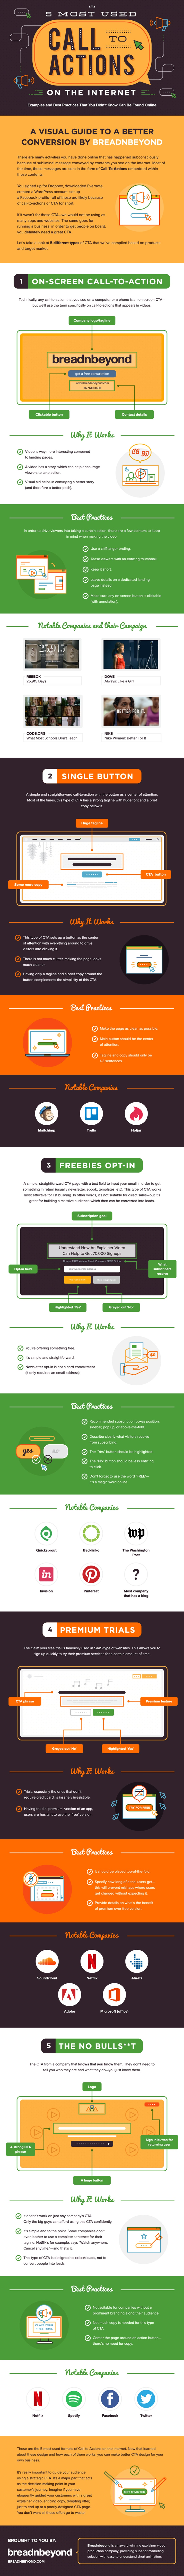 use of CTA in marketing - infographics